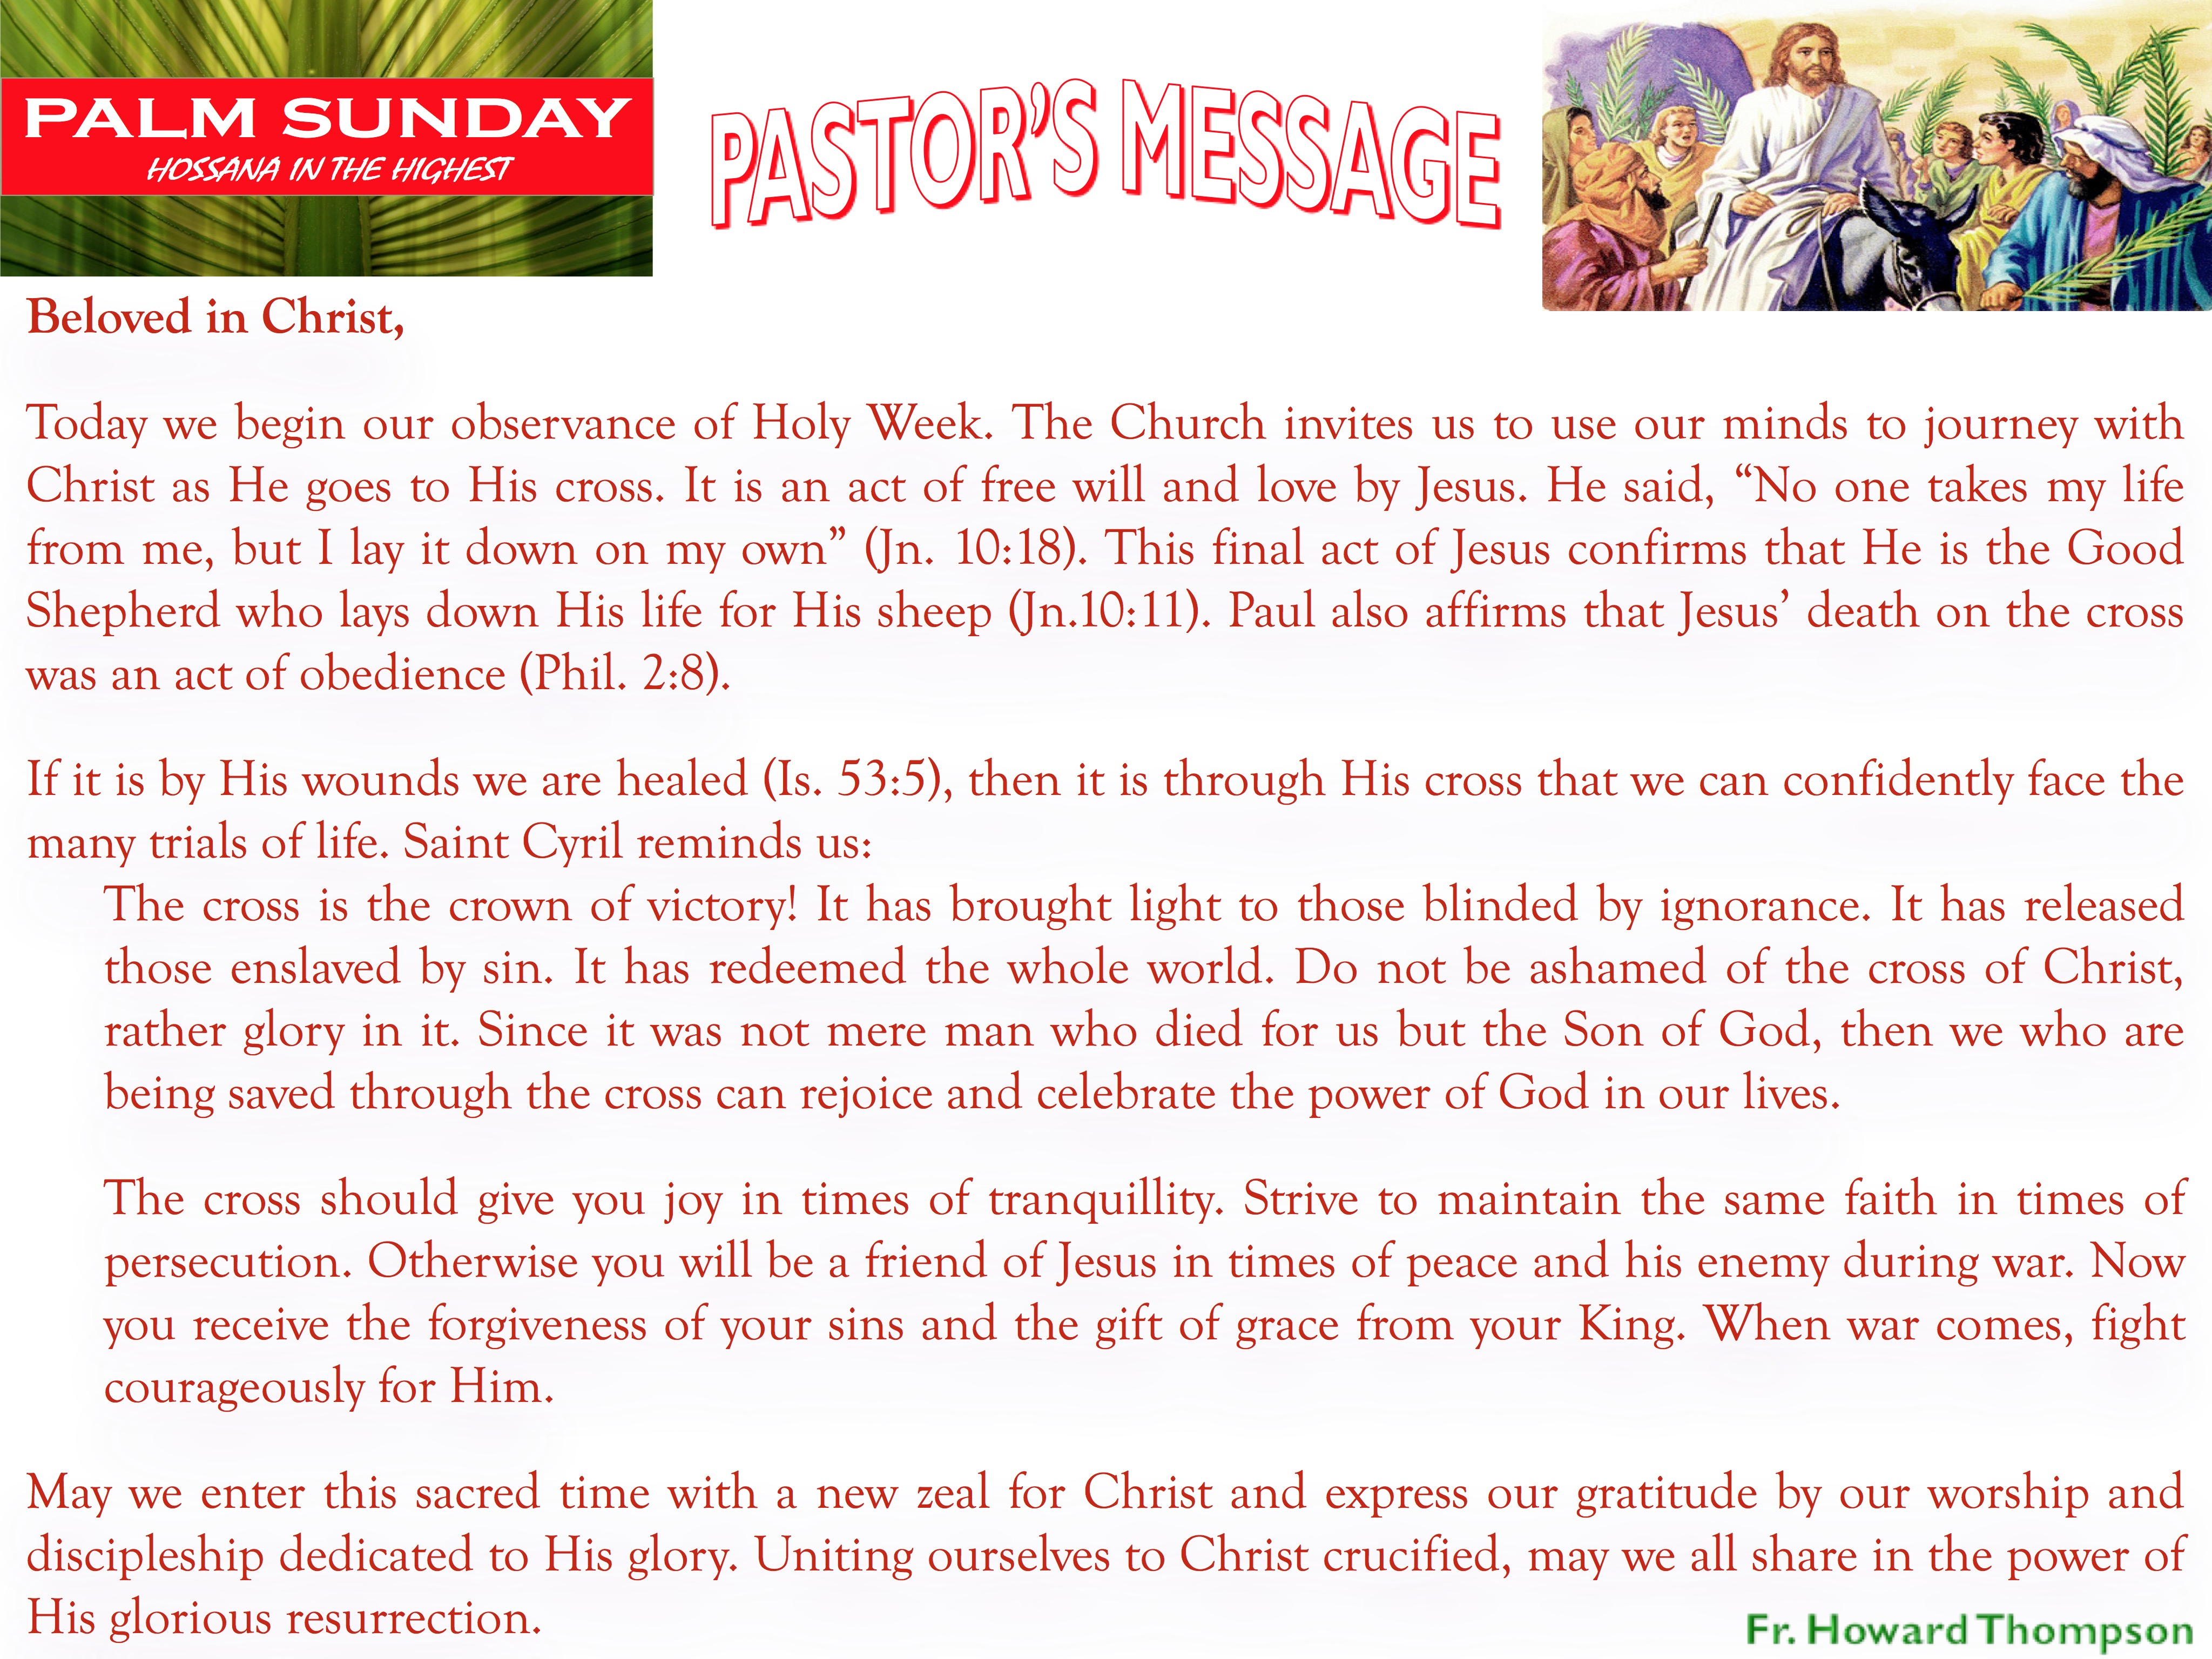 Pastor's Message - 06 Palm Sunday